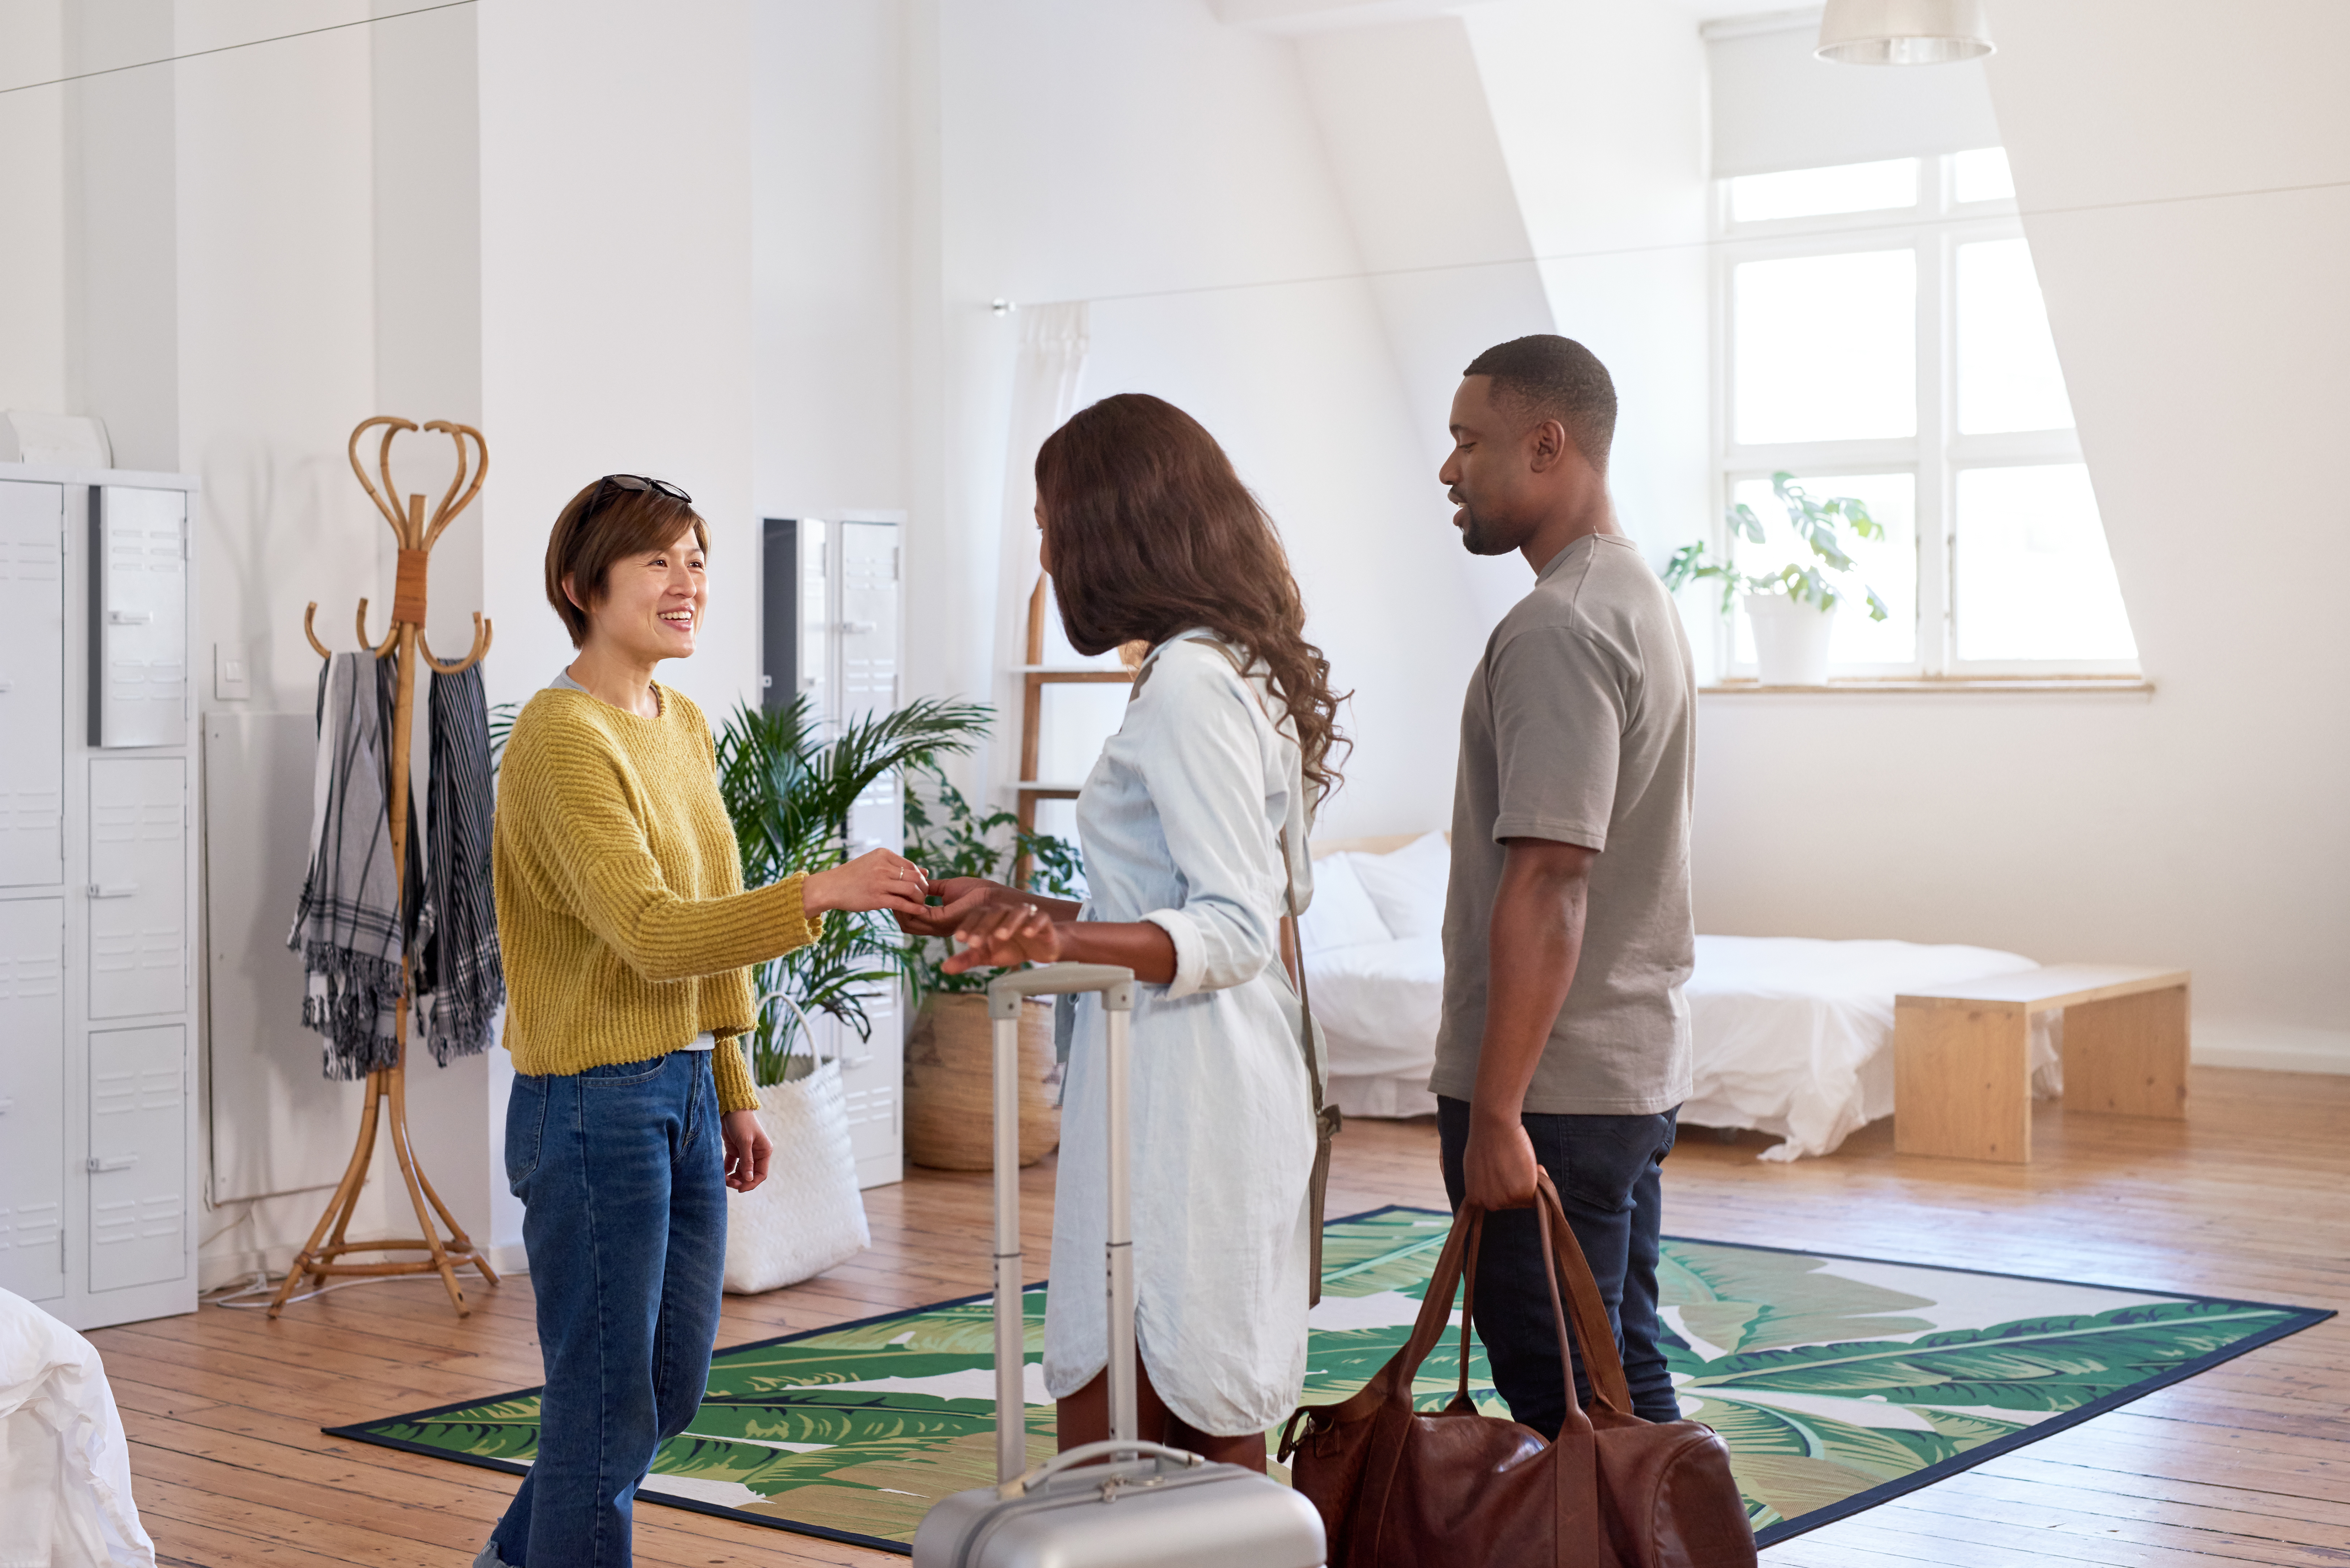 Long-term guests in the rental property